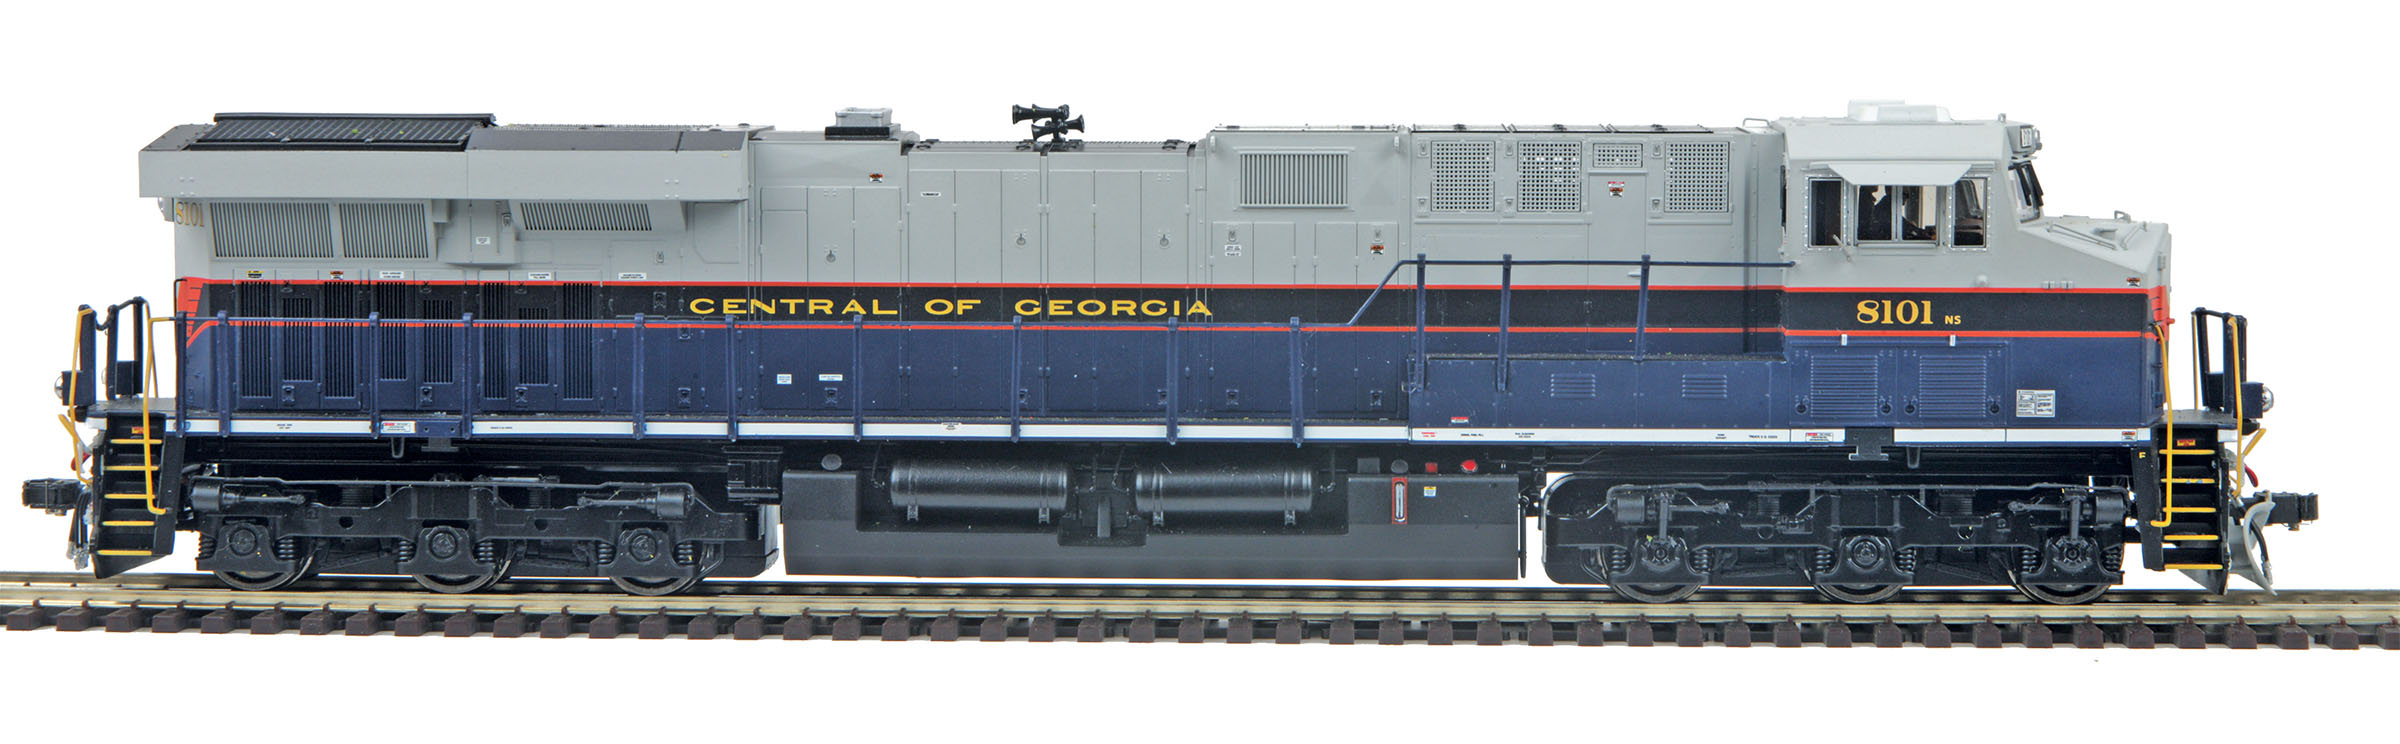 80 2337 1 mth electric trains